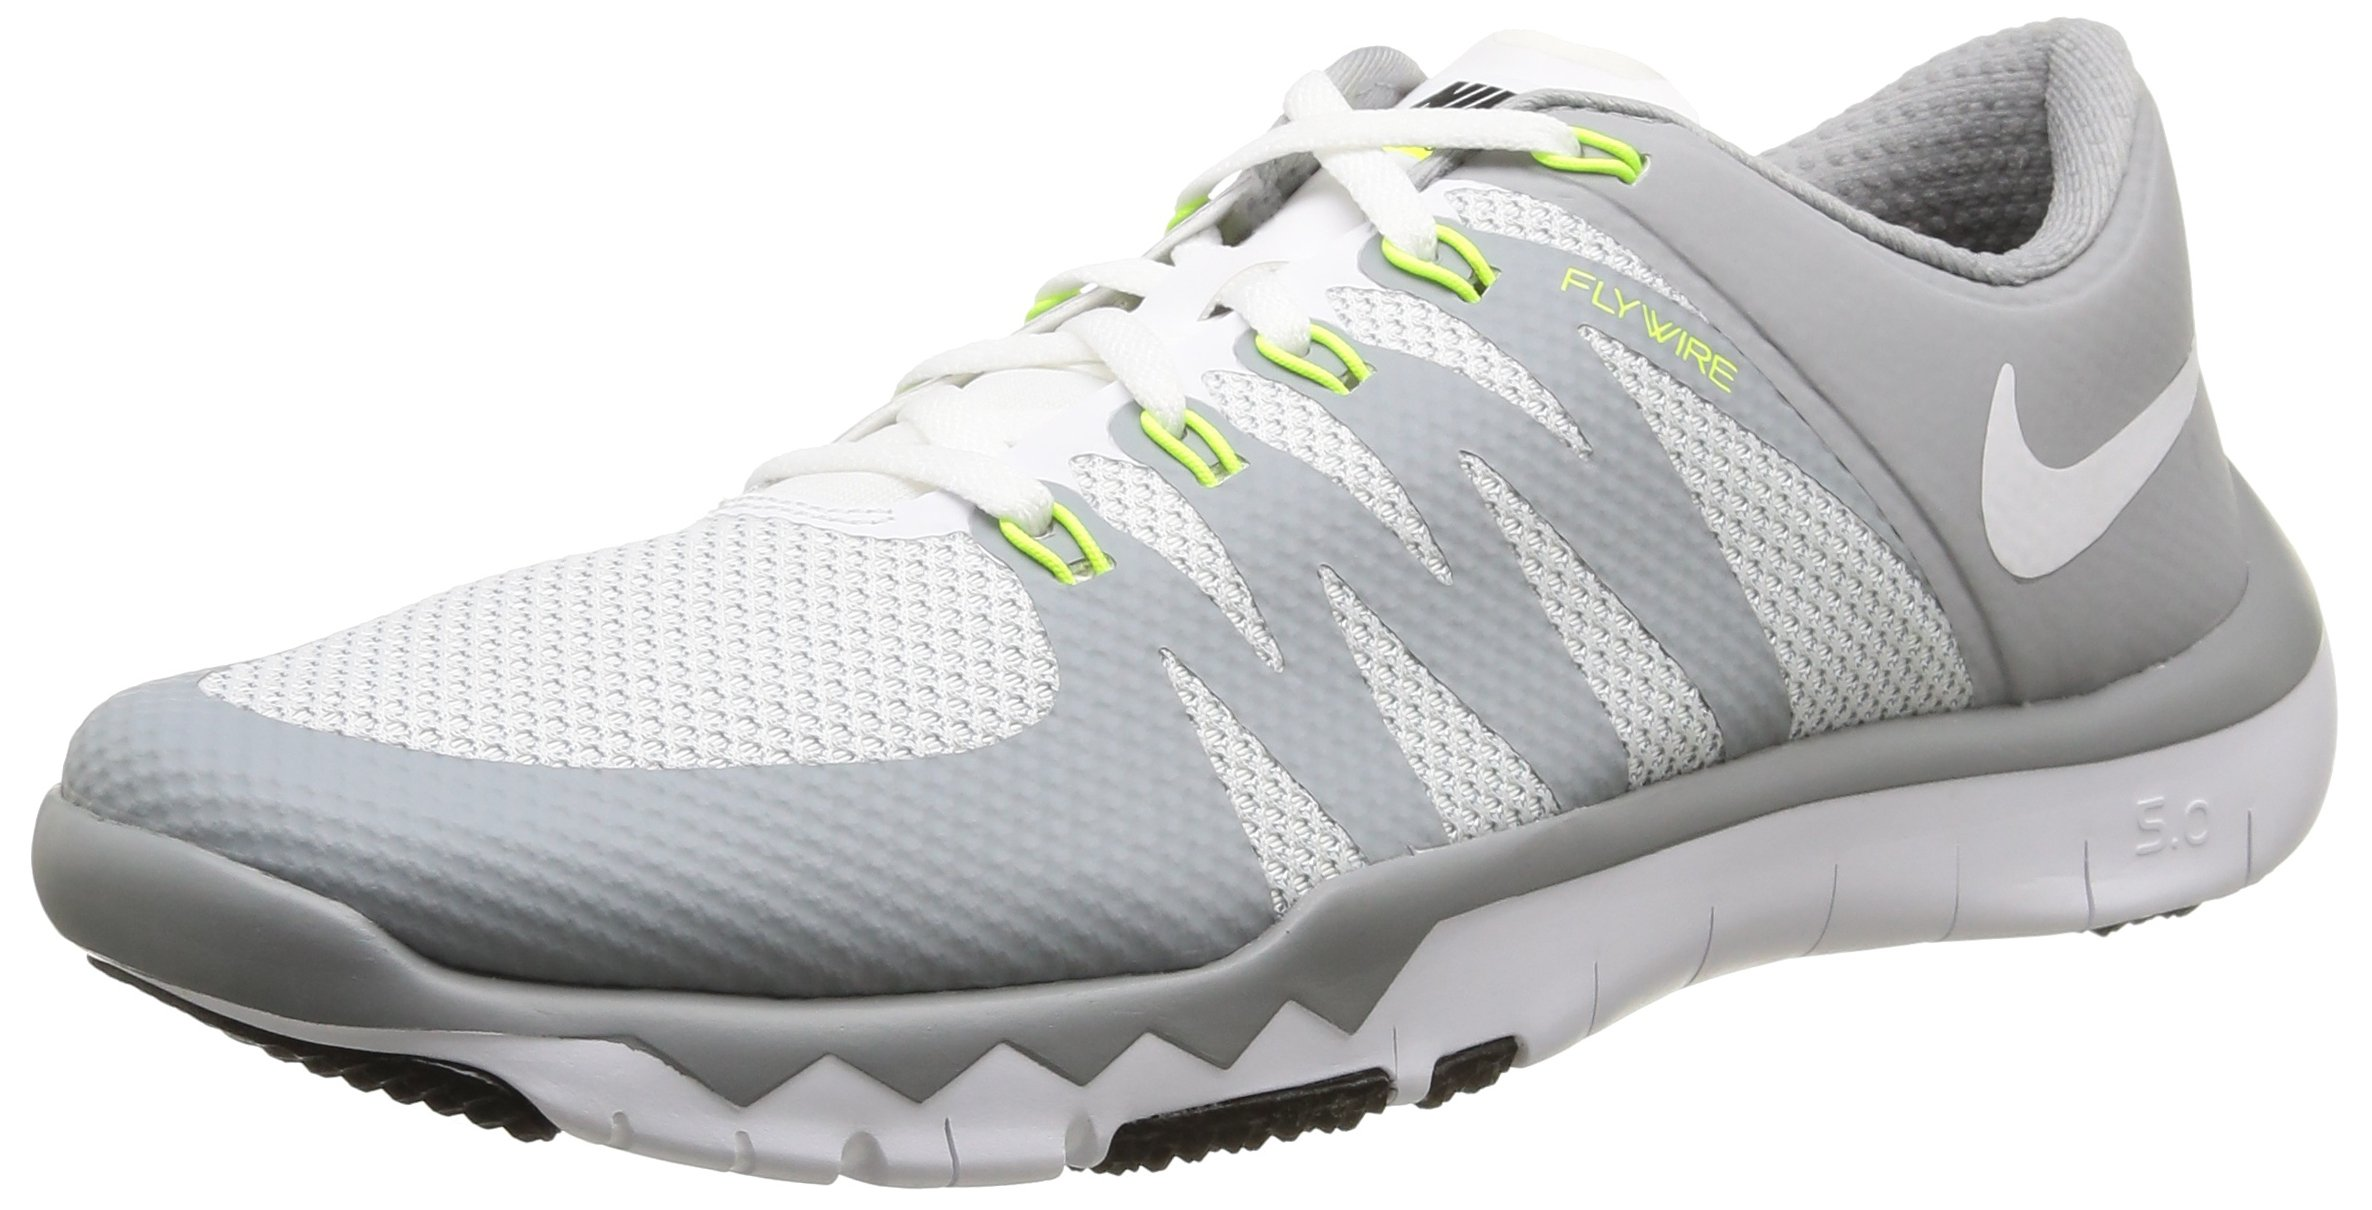 the best attitude 62520 bc1c7 Galleon - Nike Men s Free Trainer 5.0 V6 Cross-Trainers Shoes 7 M US